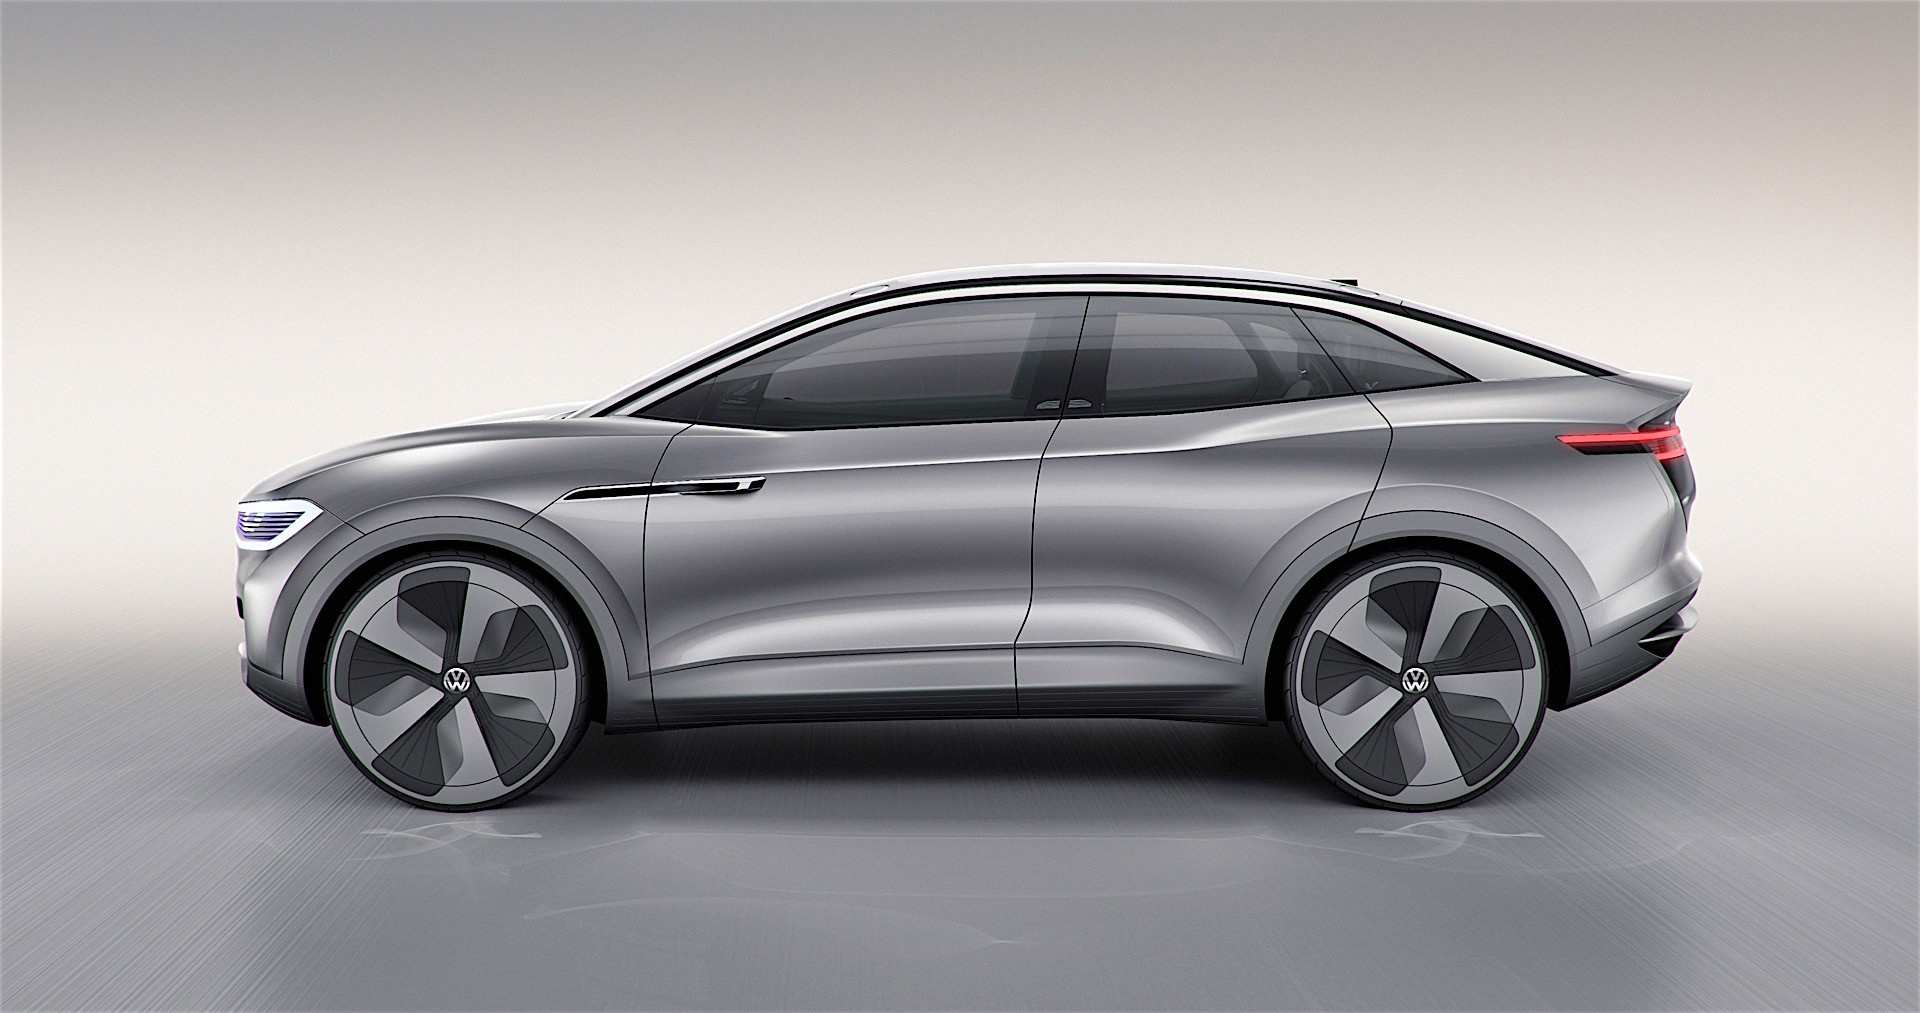 60 Concept of Crossover Volkswagen 2019 Concept Release for Crossover Volkswagen 2019 Concept